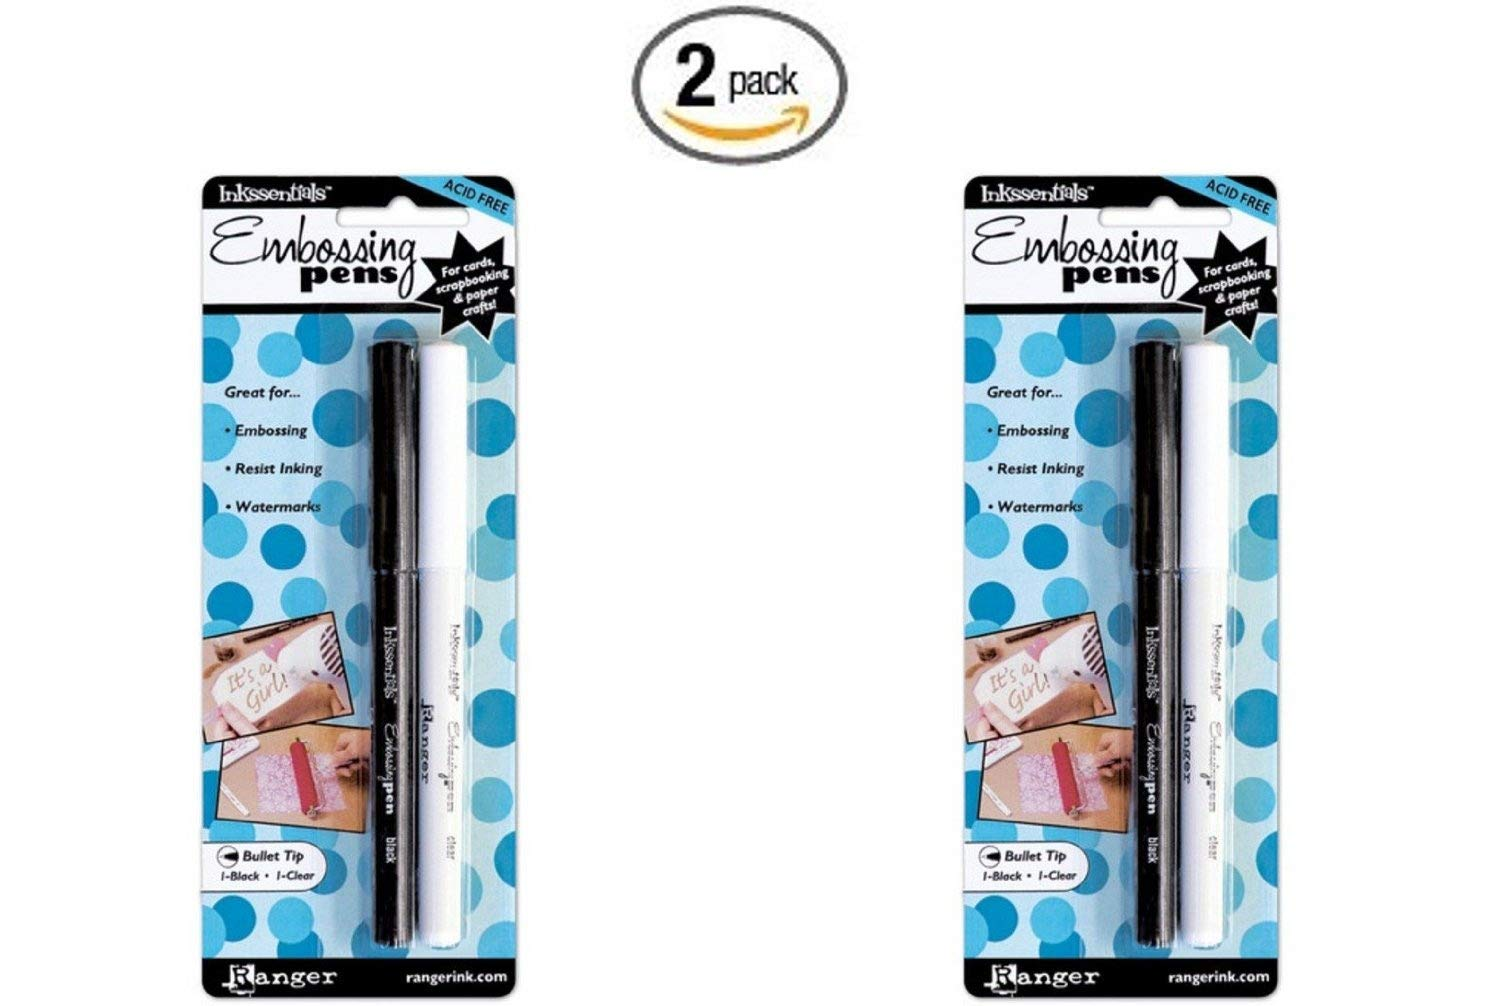 Ranger EMP20653 Inkssentials Embossing Pens, 2-Pack, Black And Clear Notions - In Network